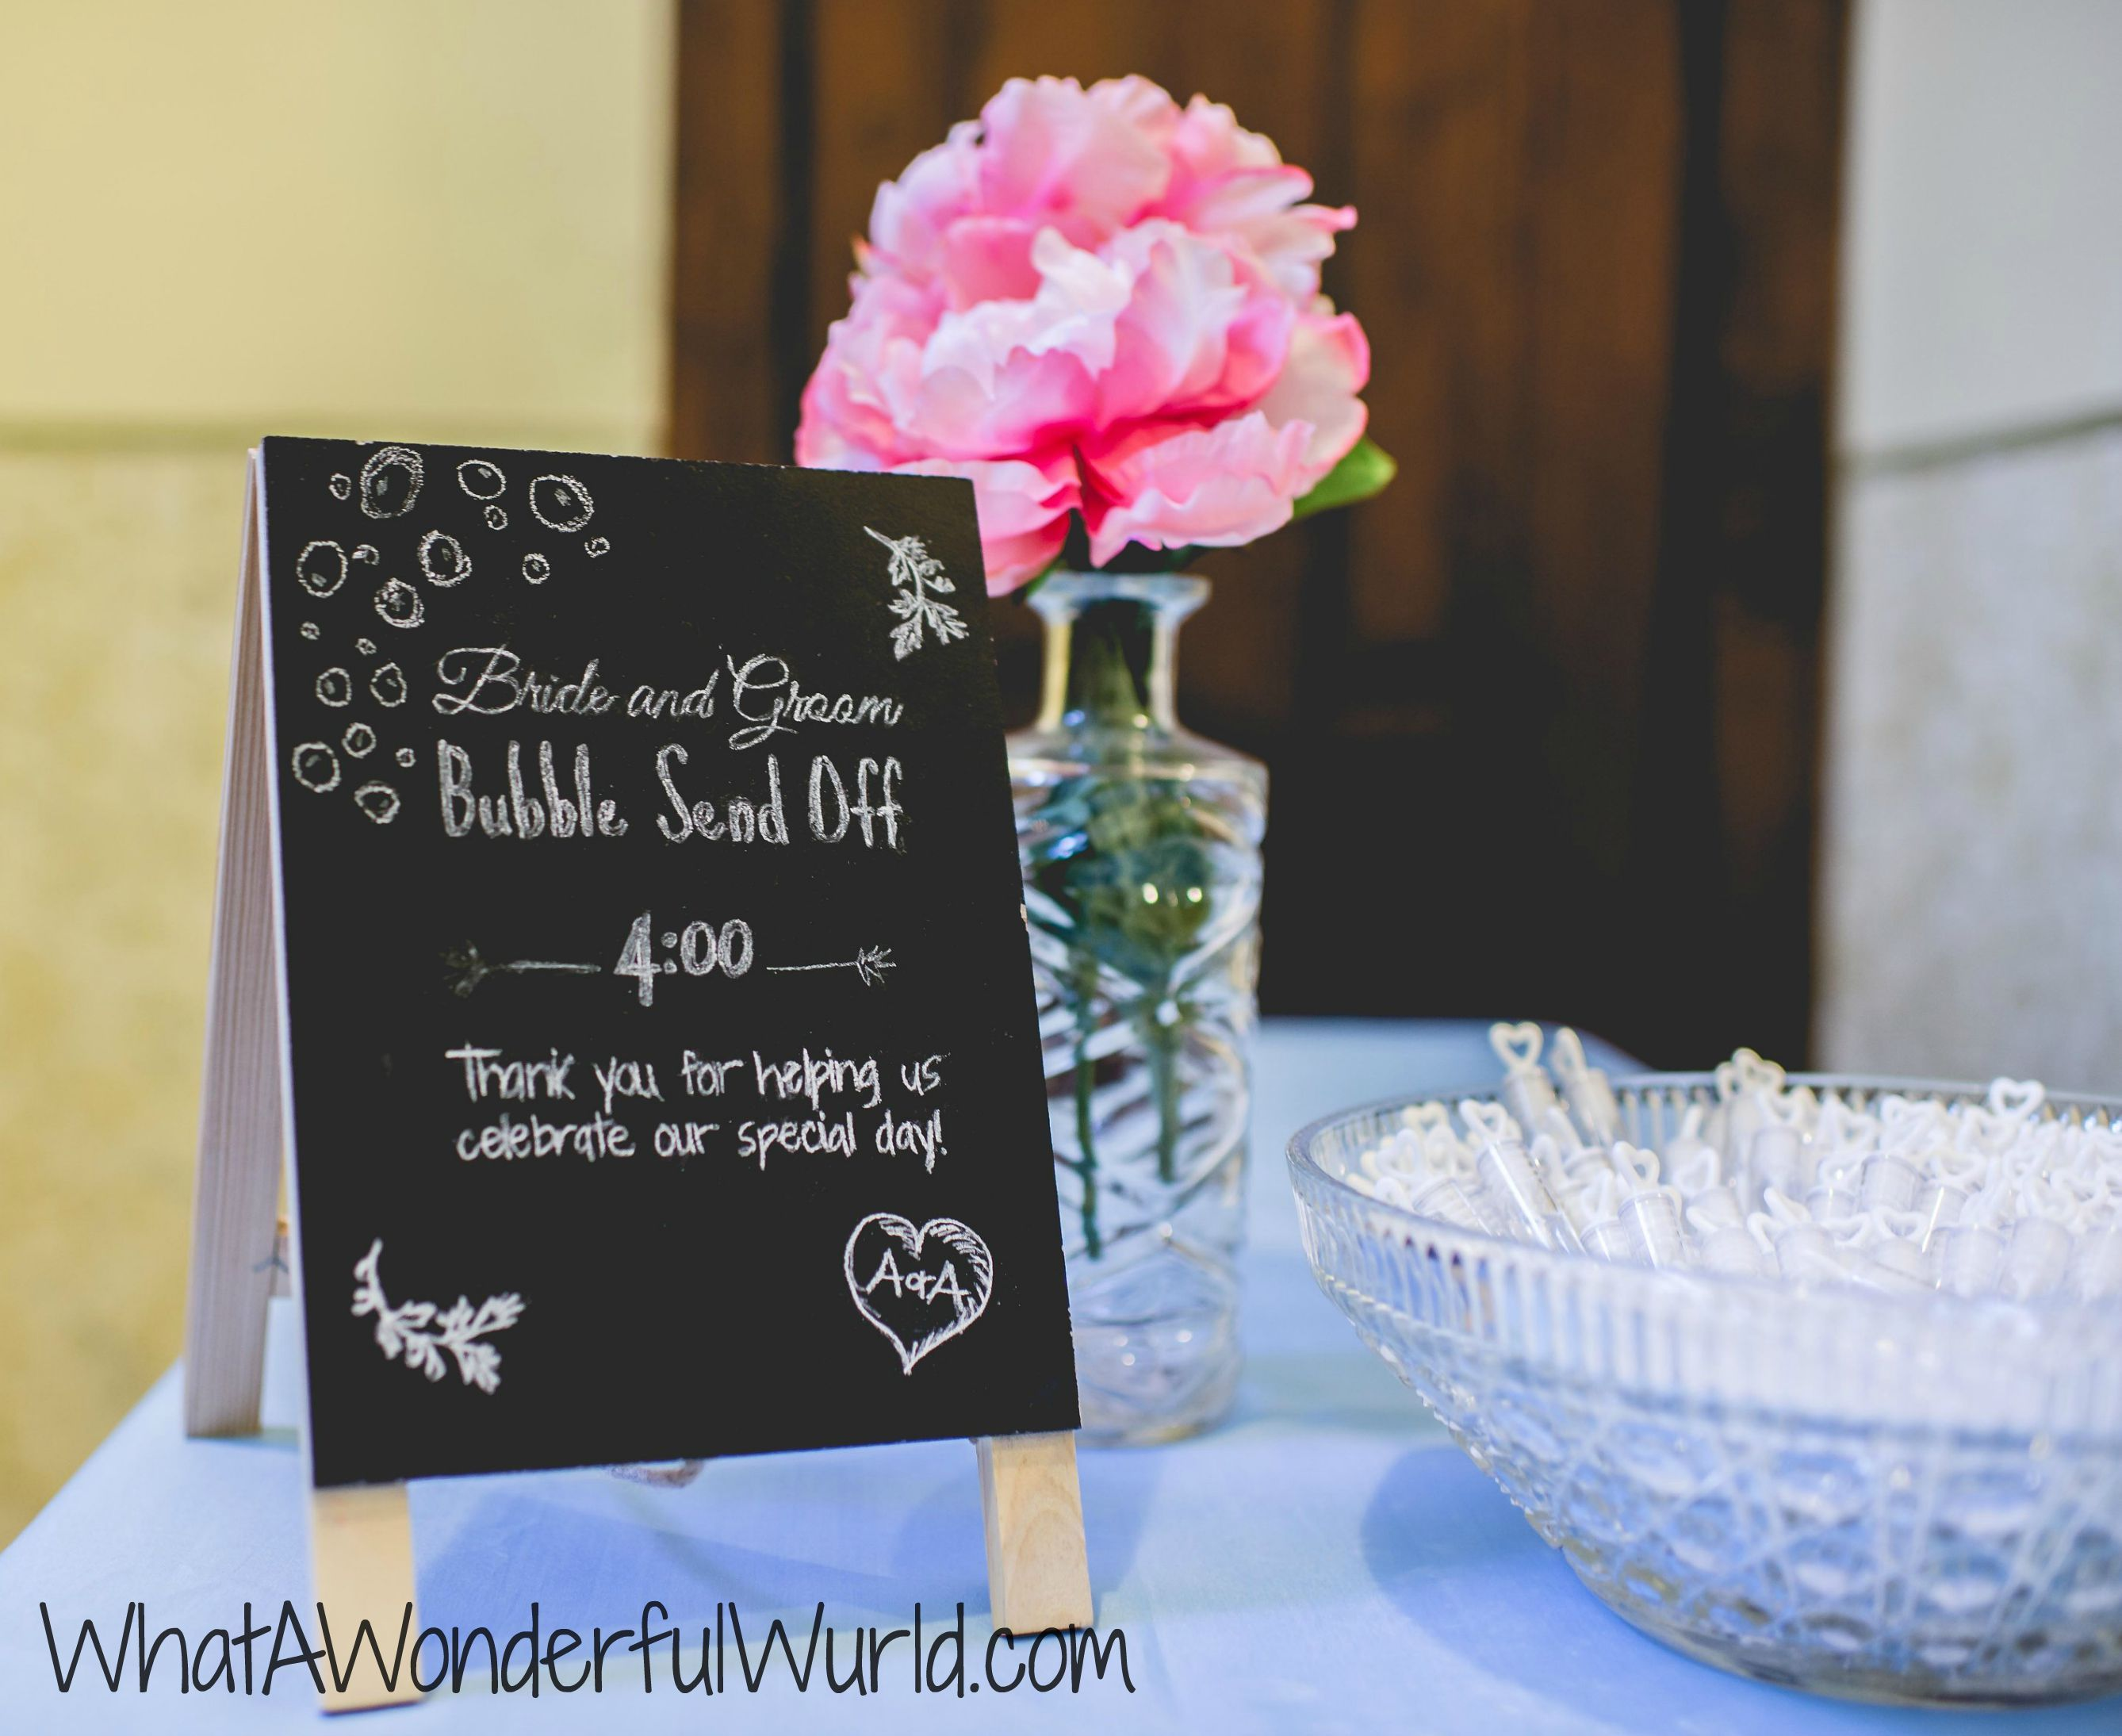 Bride And Groom Bubble Send Off Table With Chalkboard Display Completely Ties In Our Fun Spring Theme For The Wedding Wedding Checklist Wedding My Wedding